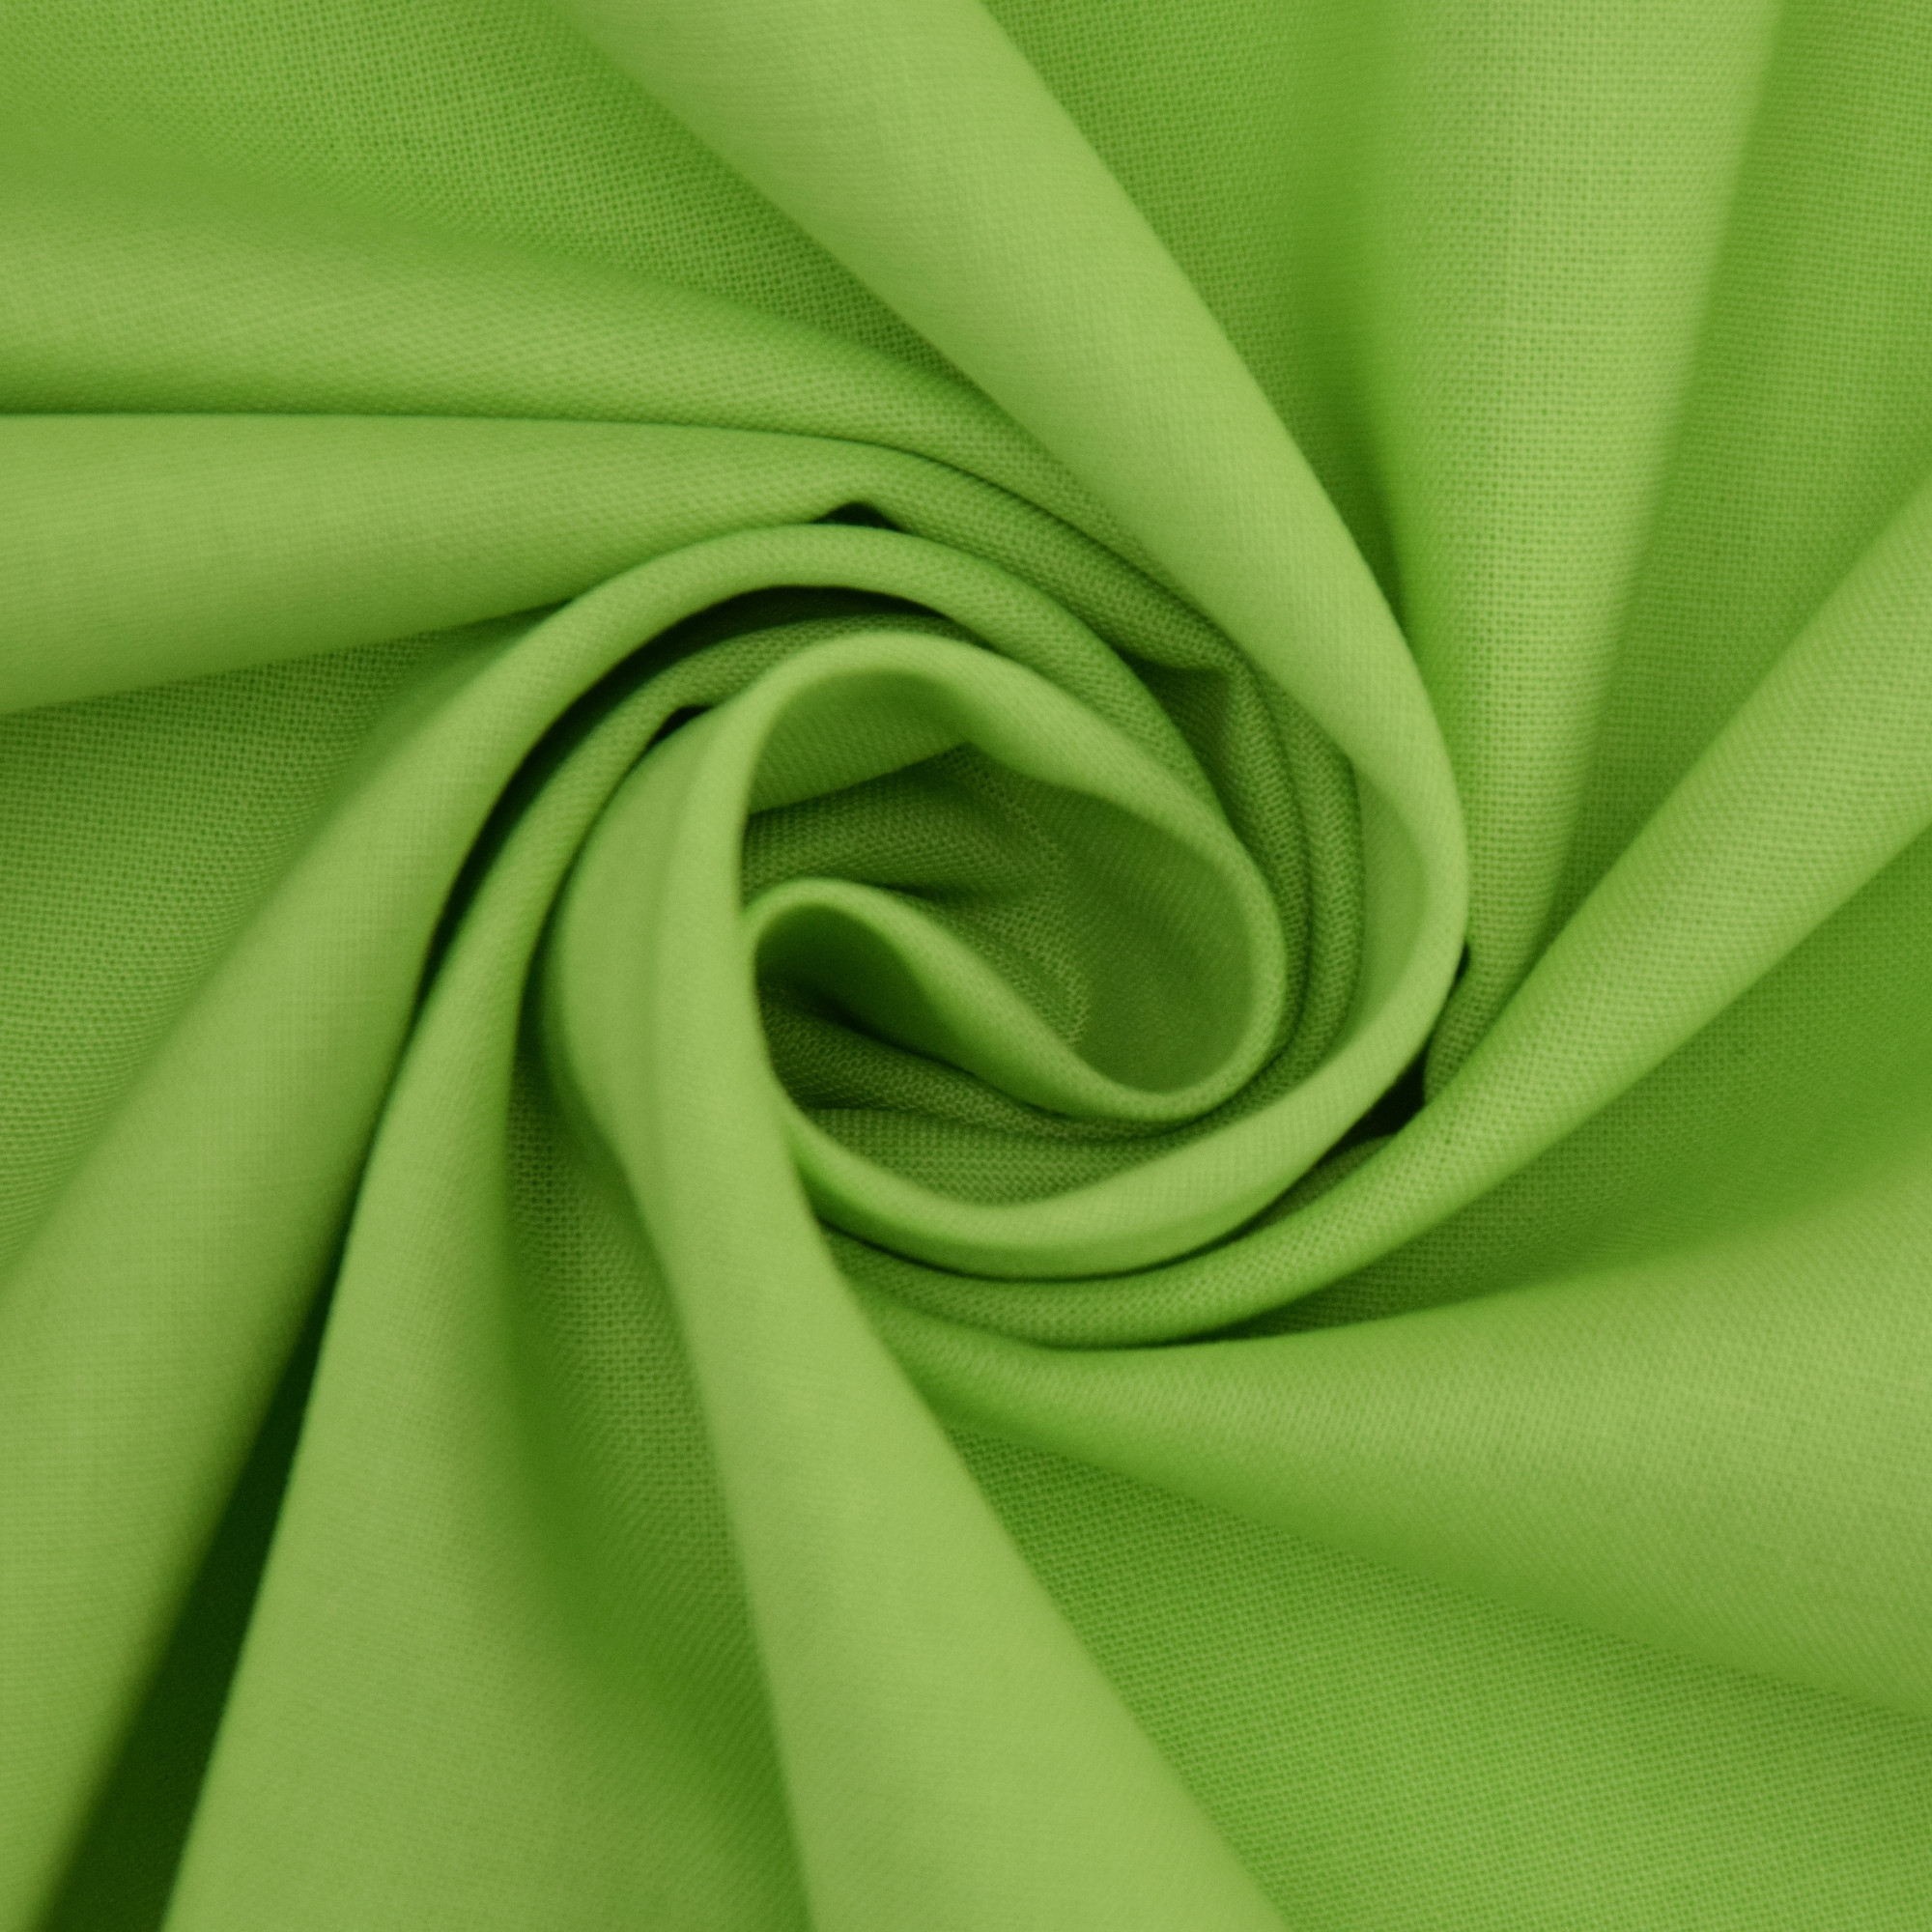 Cotton Cretonne green 2 | 100.018-4035 | grün